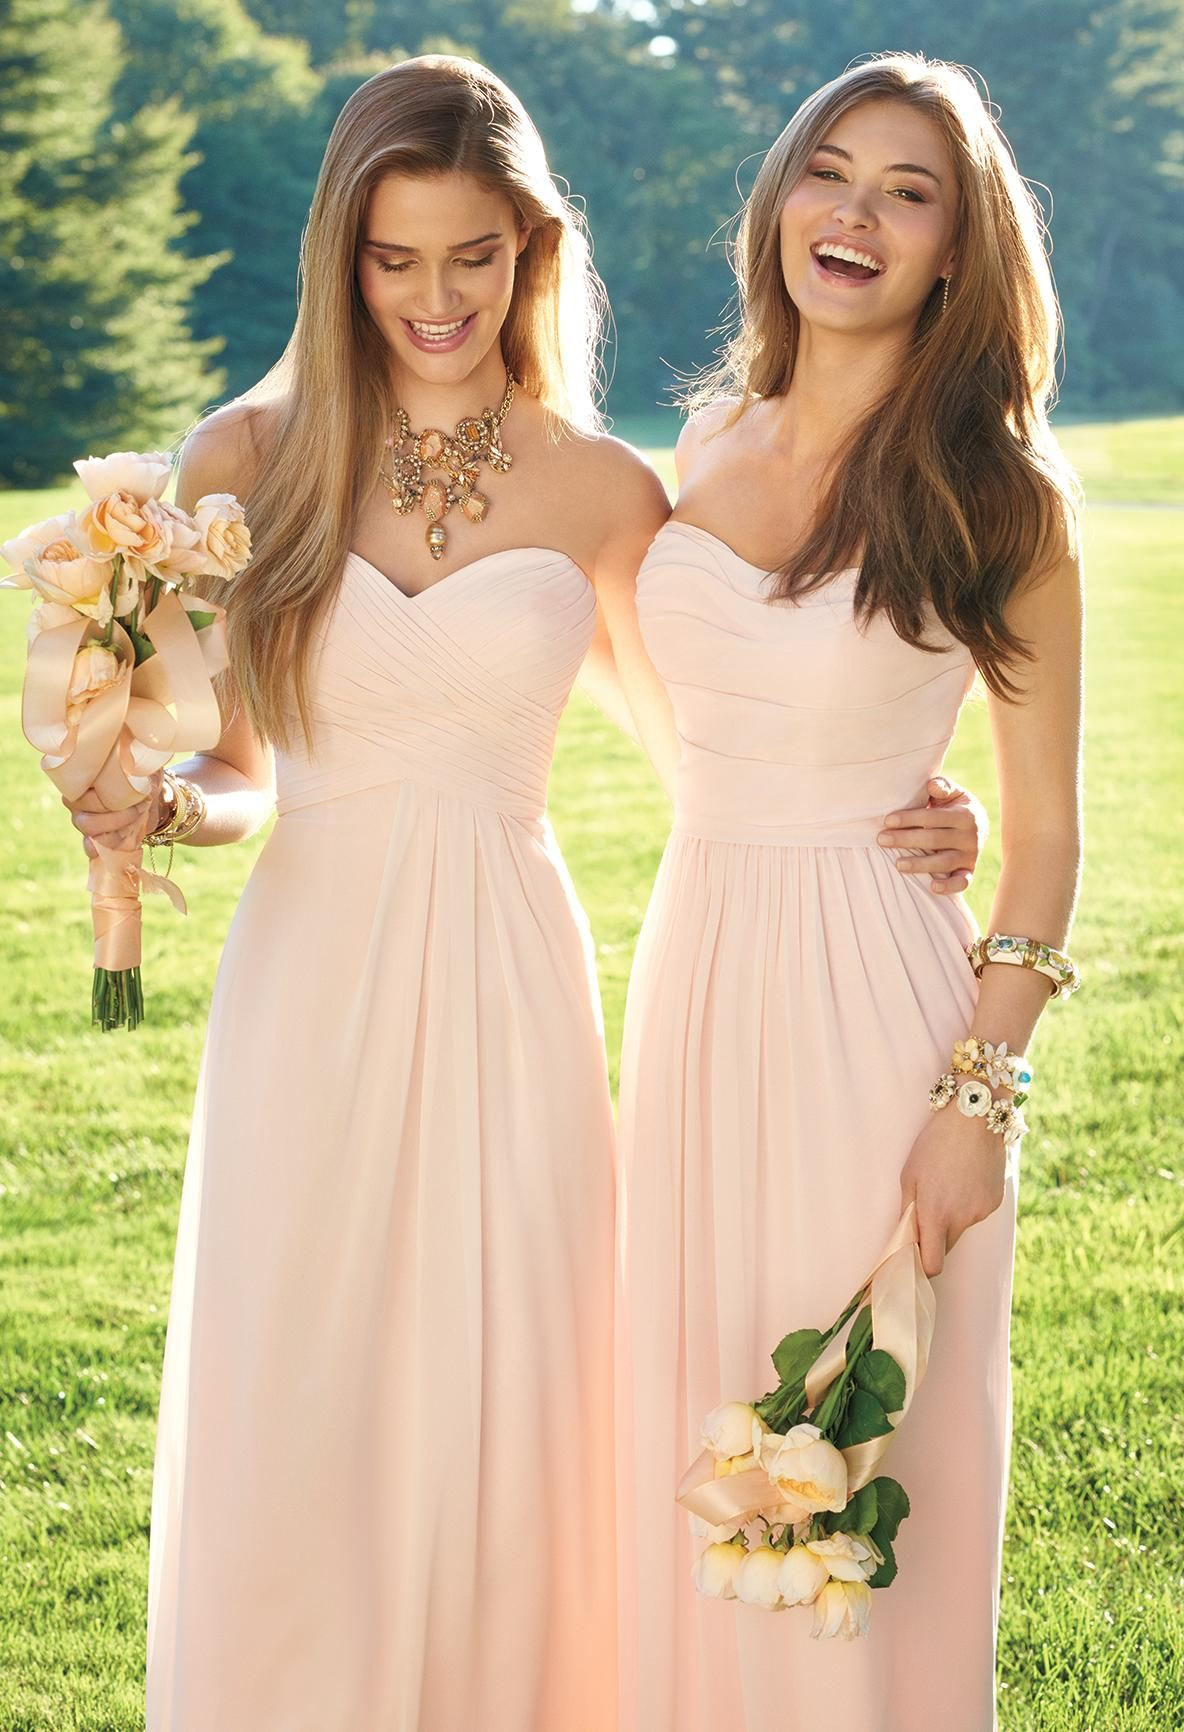 Strapless crisscross bodice dress wedding shopping and weddings blushing beauties in our new bridesmaid dresses shop our chic collection now for your best ombrellifo Images